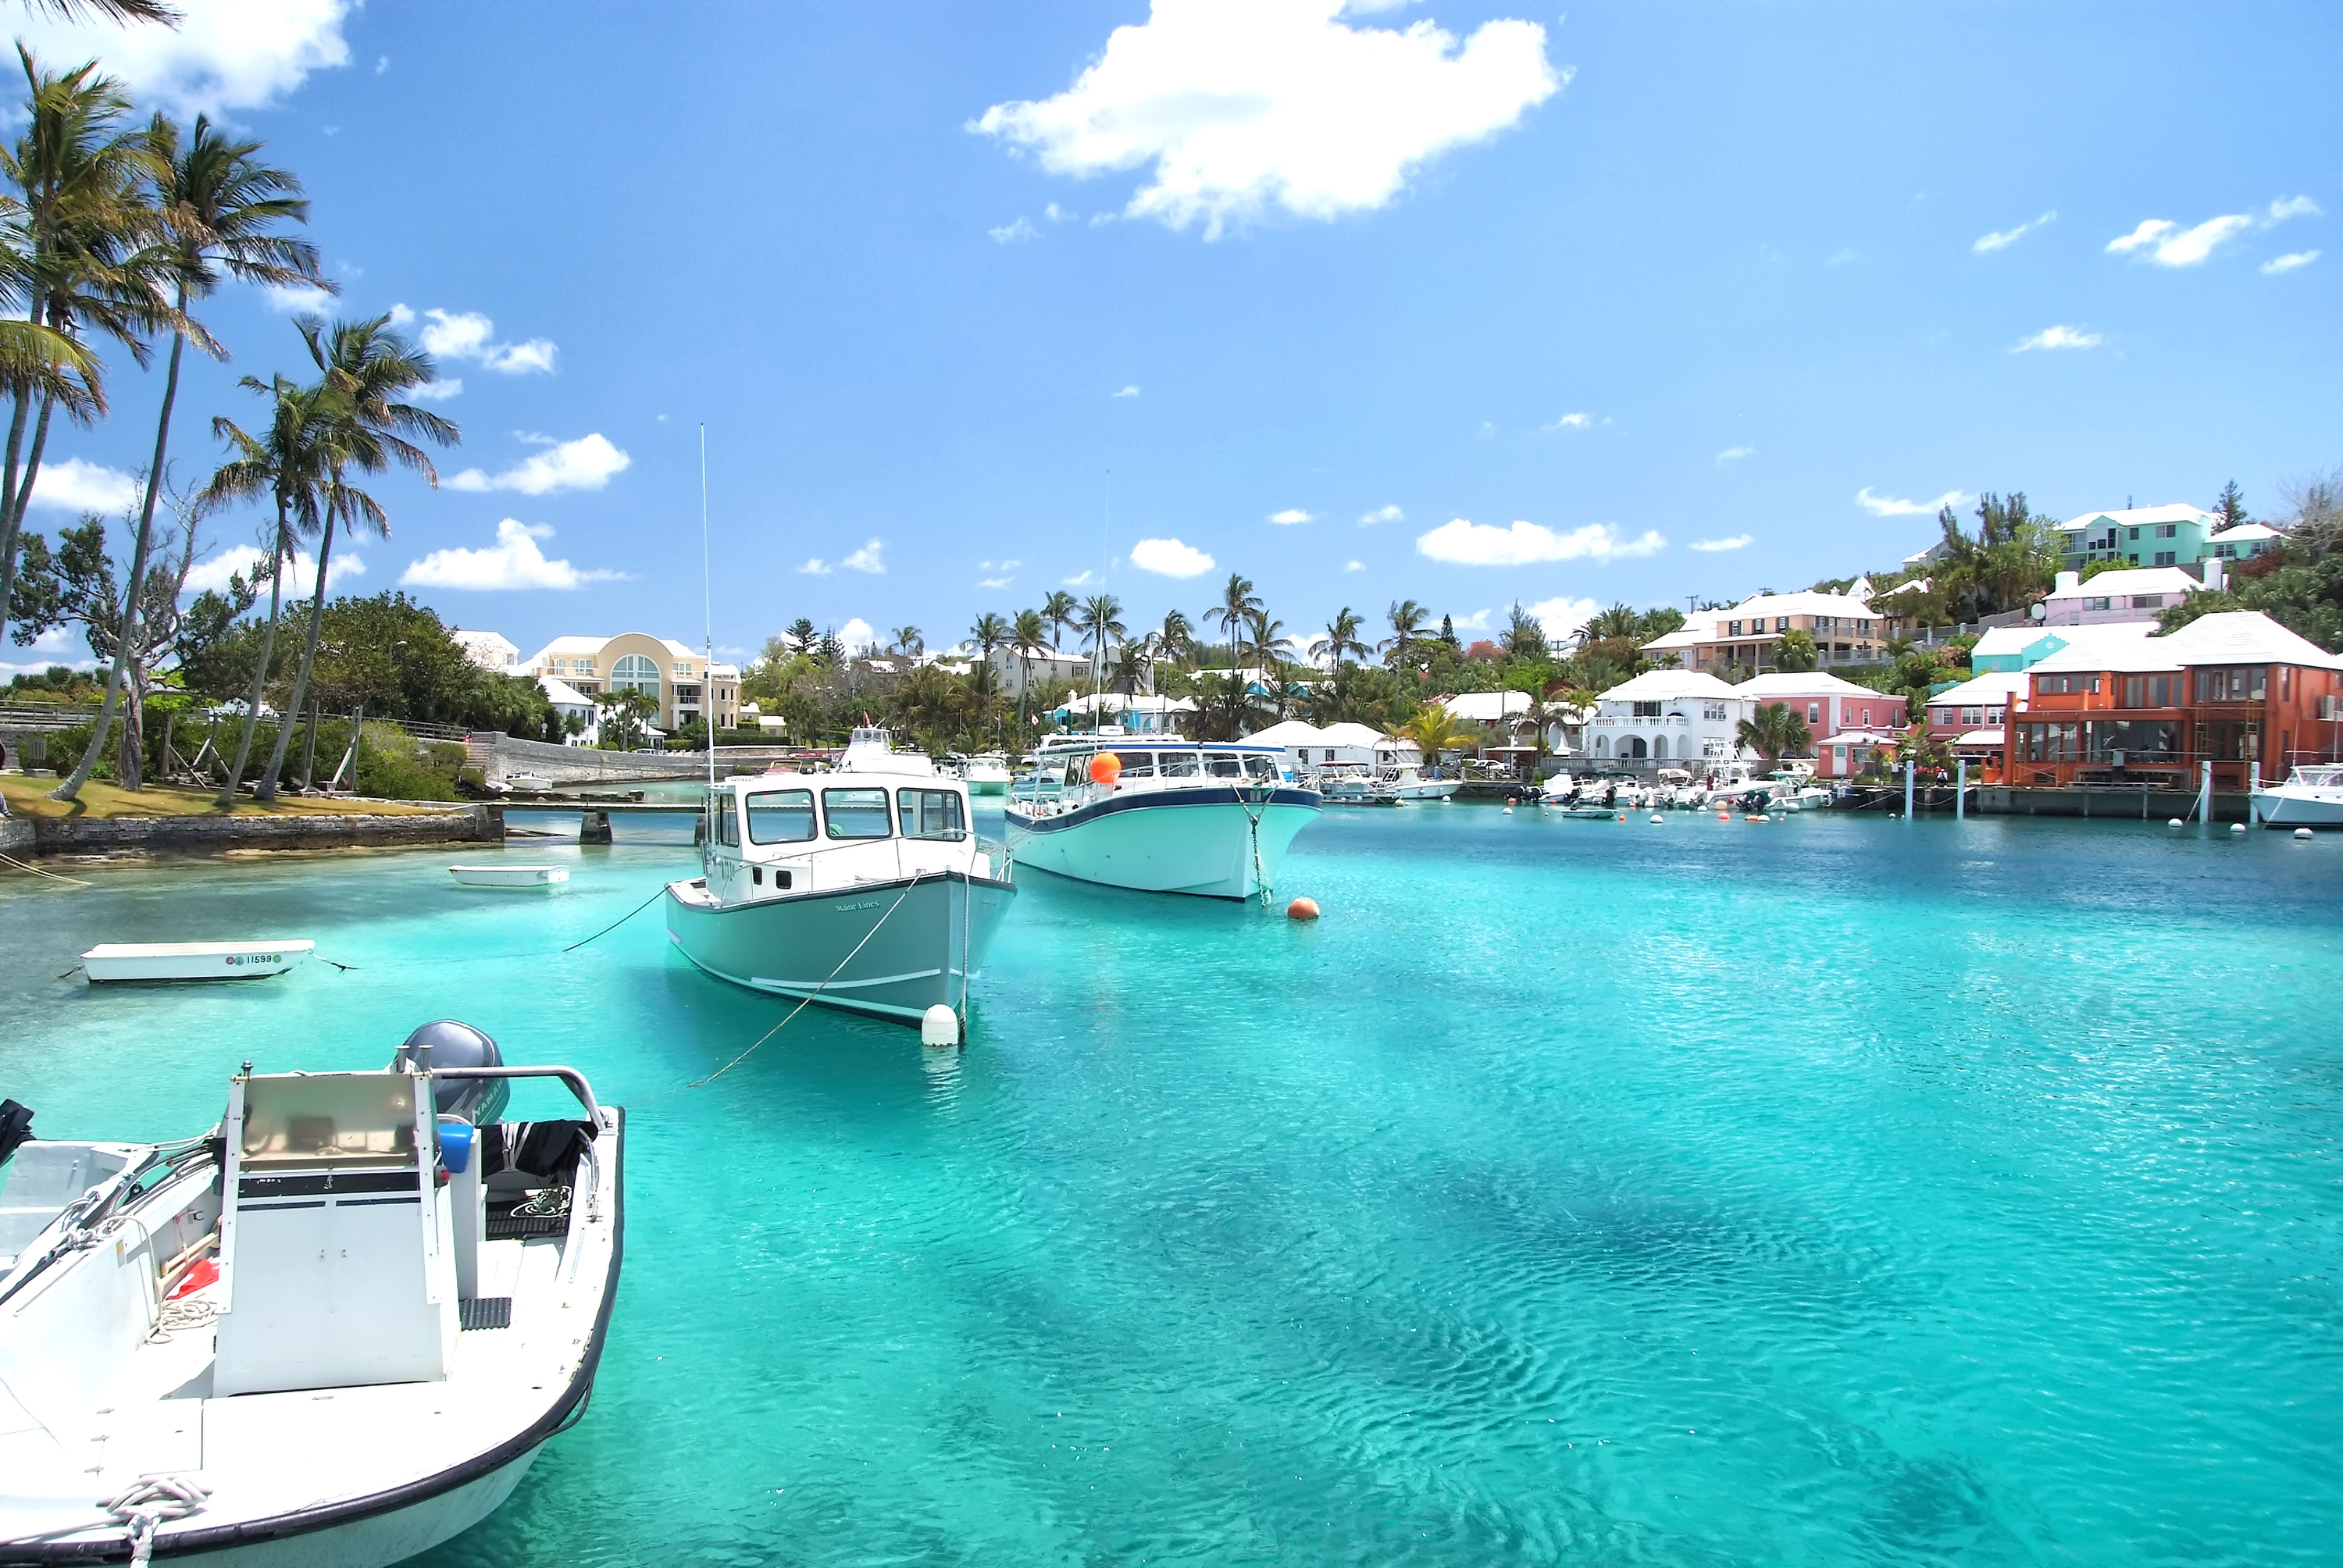 bermuda | bermuda attractions | free things to do in bermuda | affordable things to do in bermuda | destinations | vacations